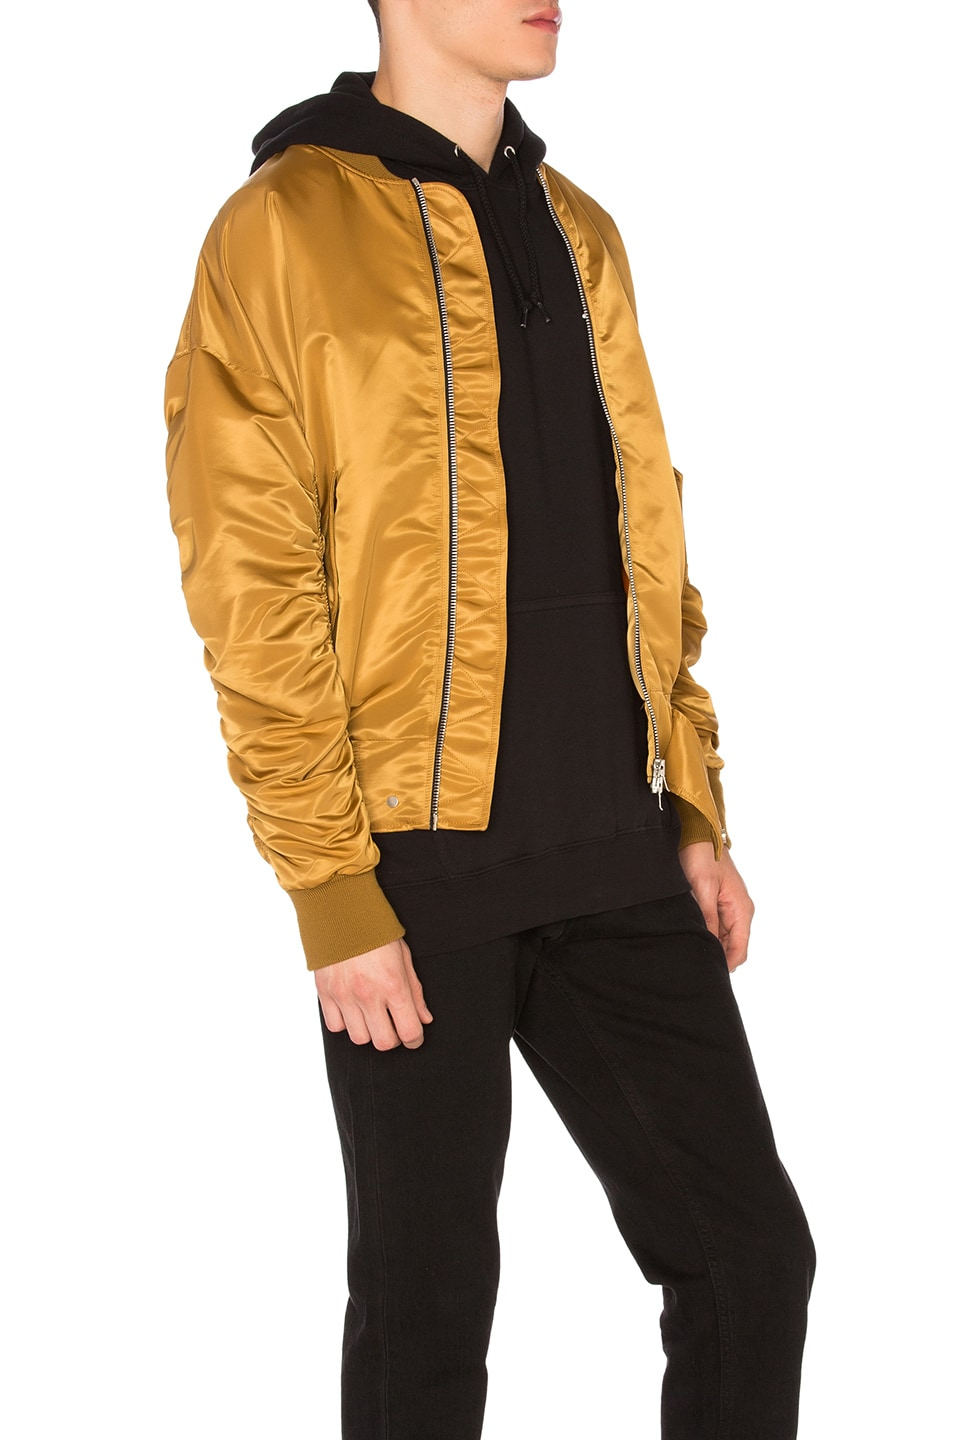 Gold bomber jacket